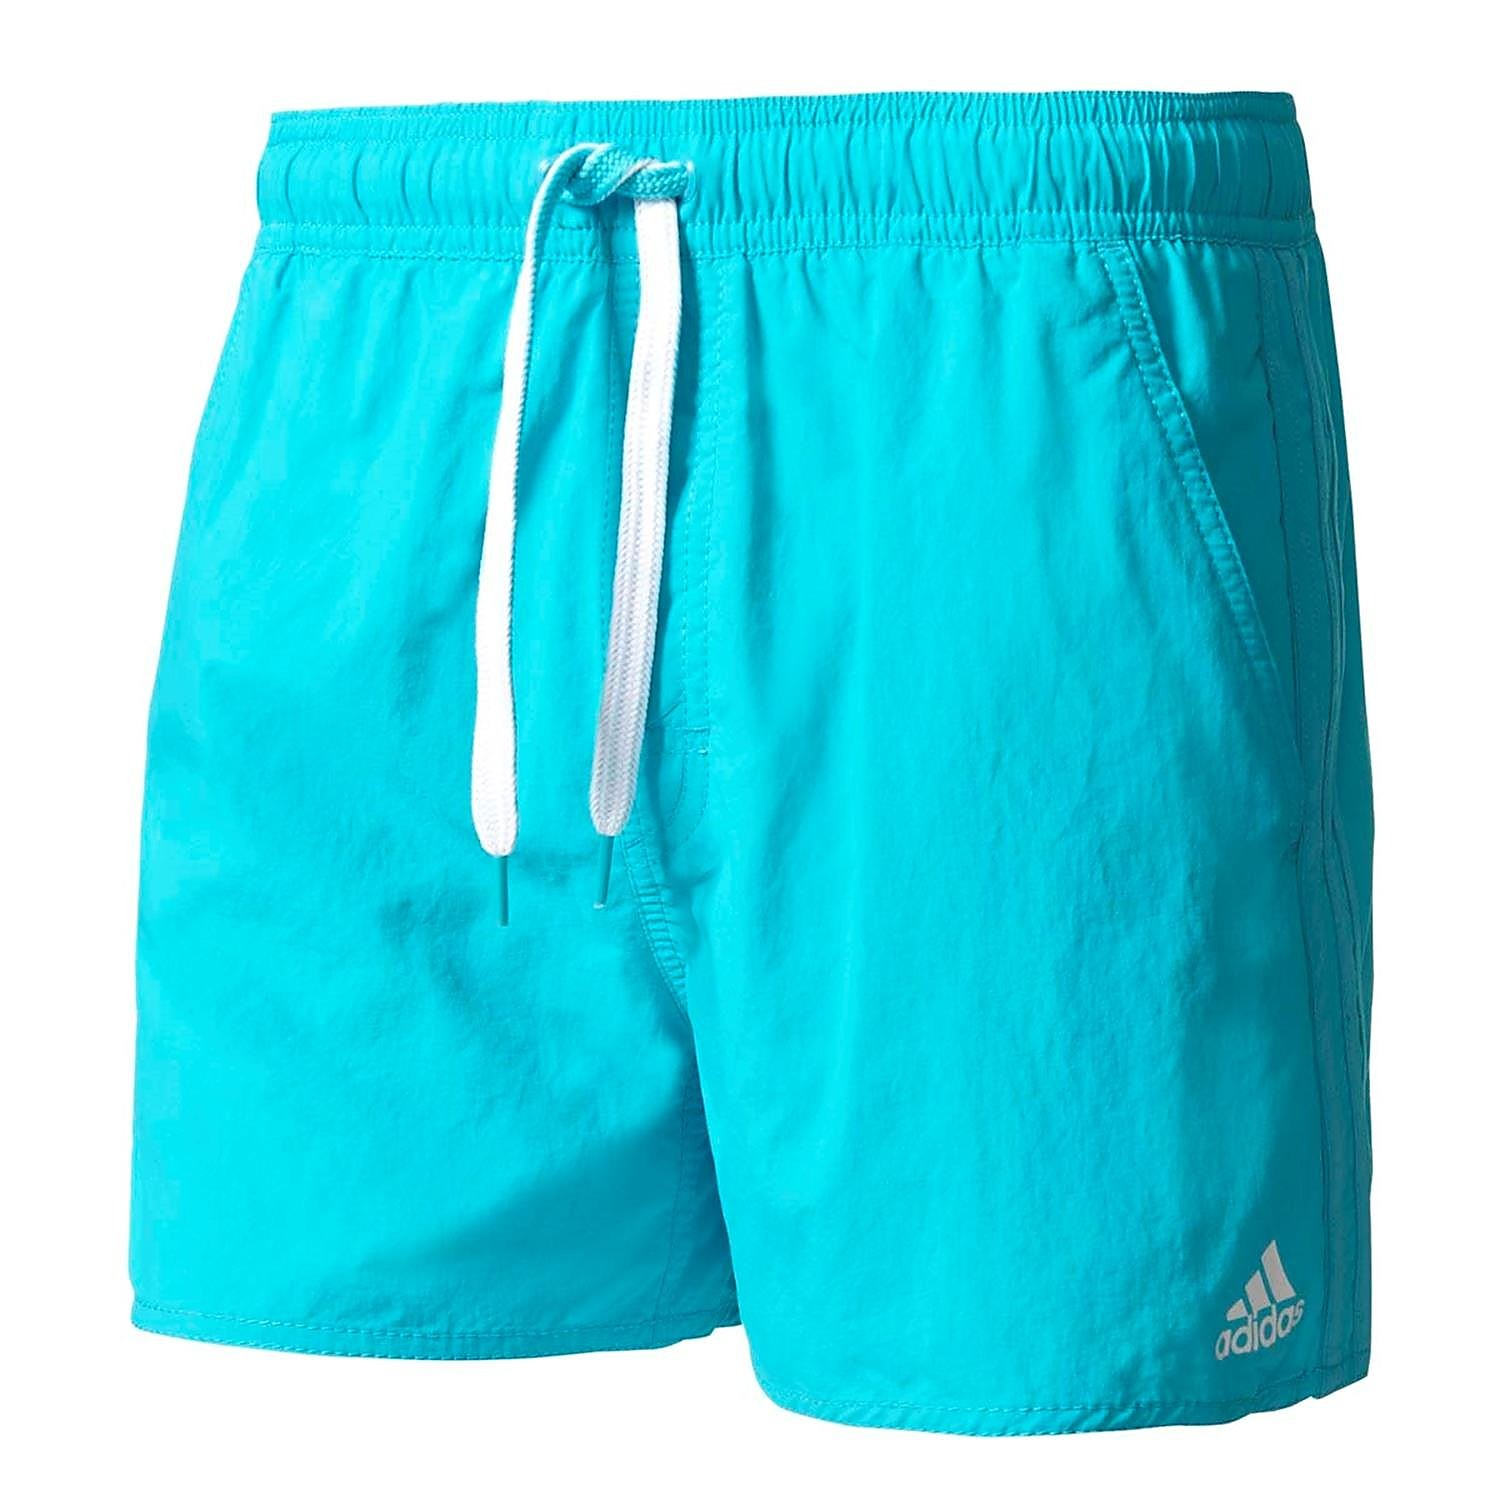 ADIDAS 3-STRIPES ZWEMSHORT HEREN